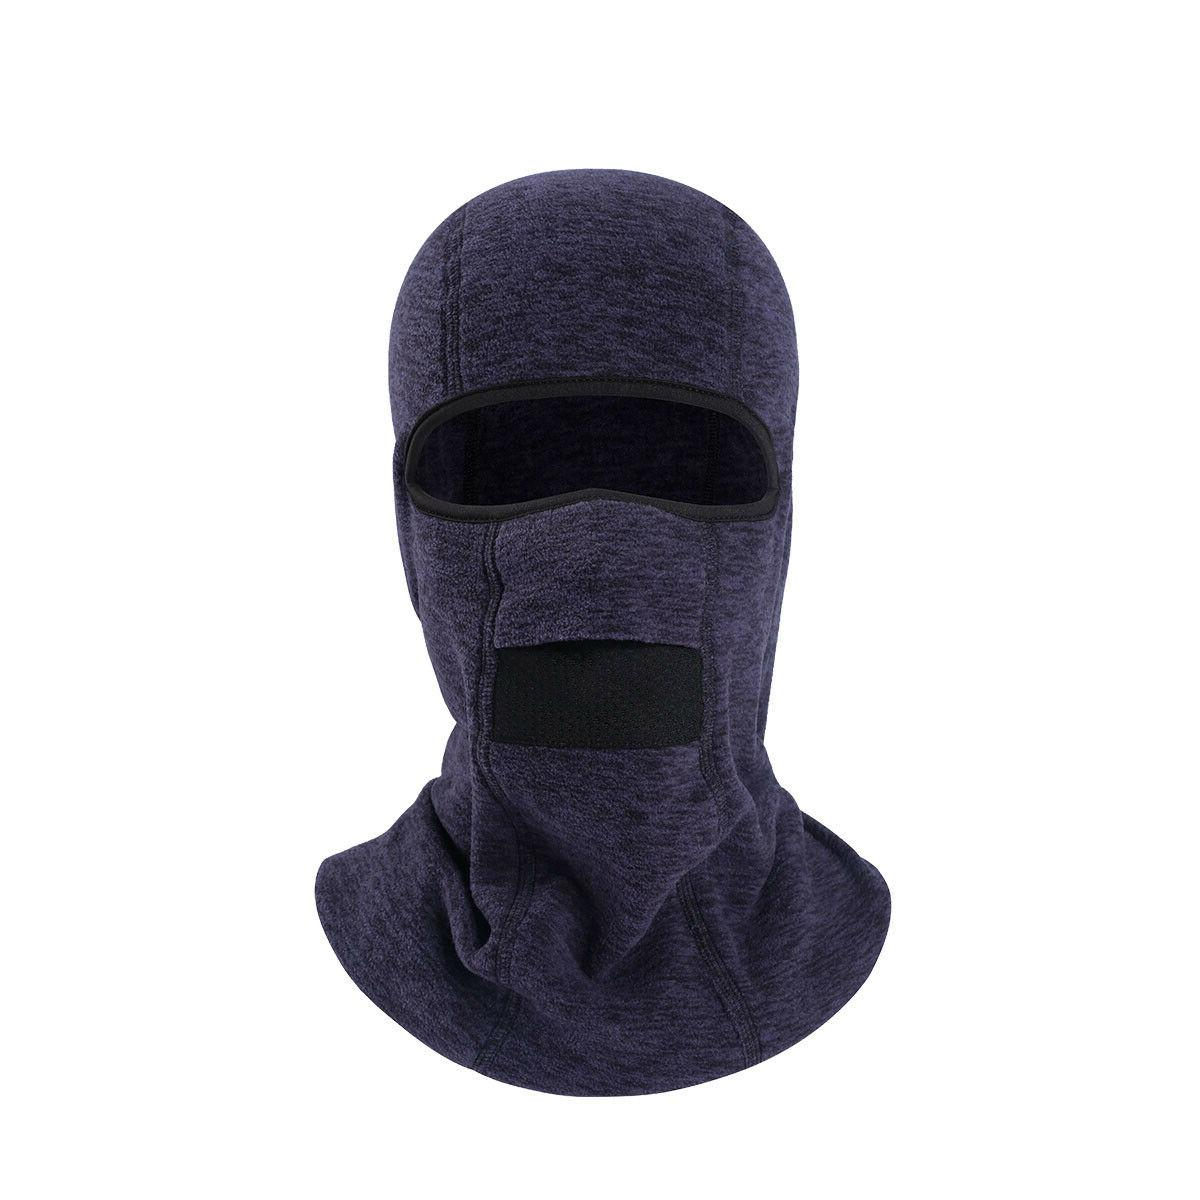 Balaclava Outdoor Sports Winter Thermal Fleece